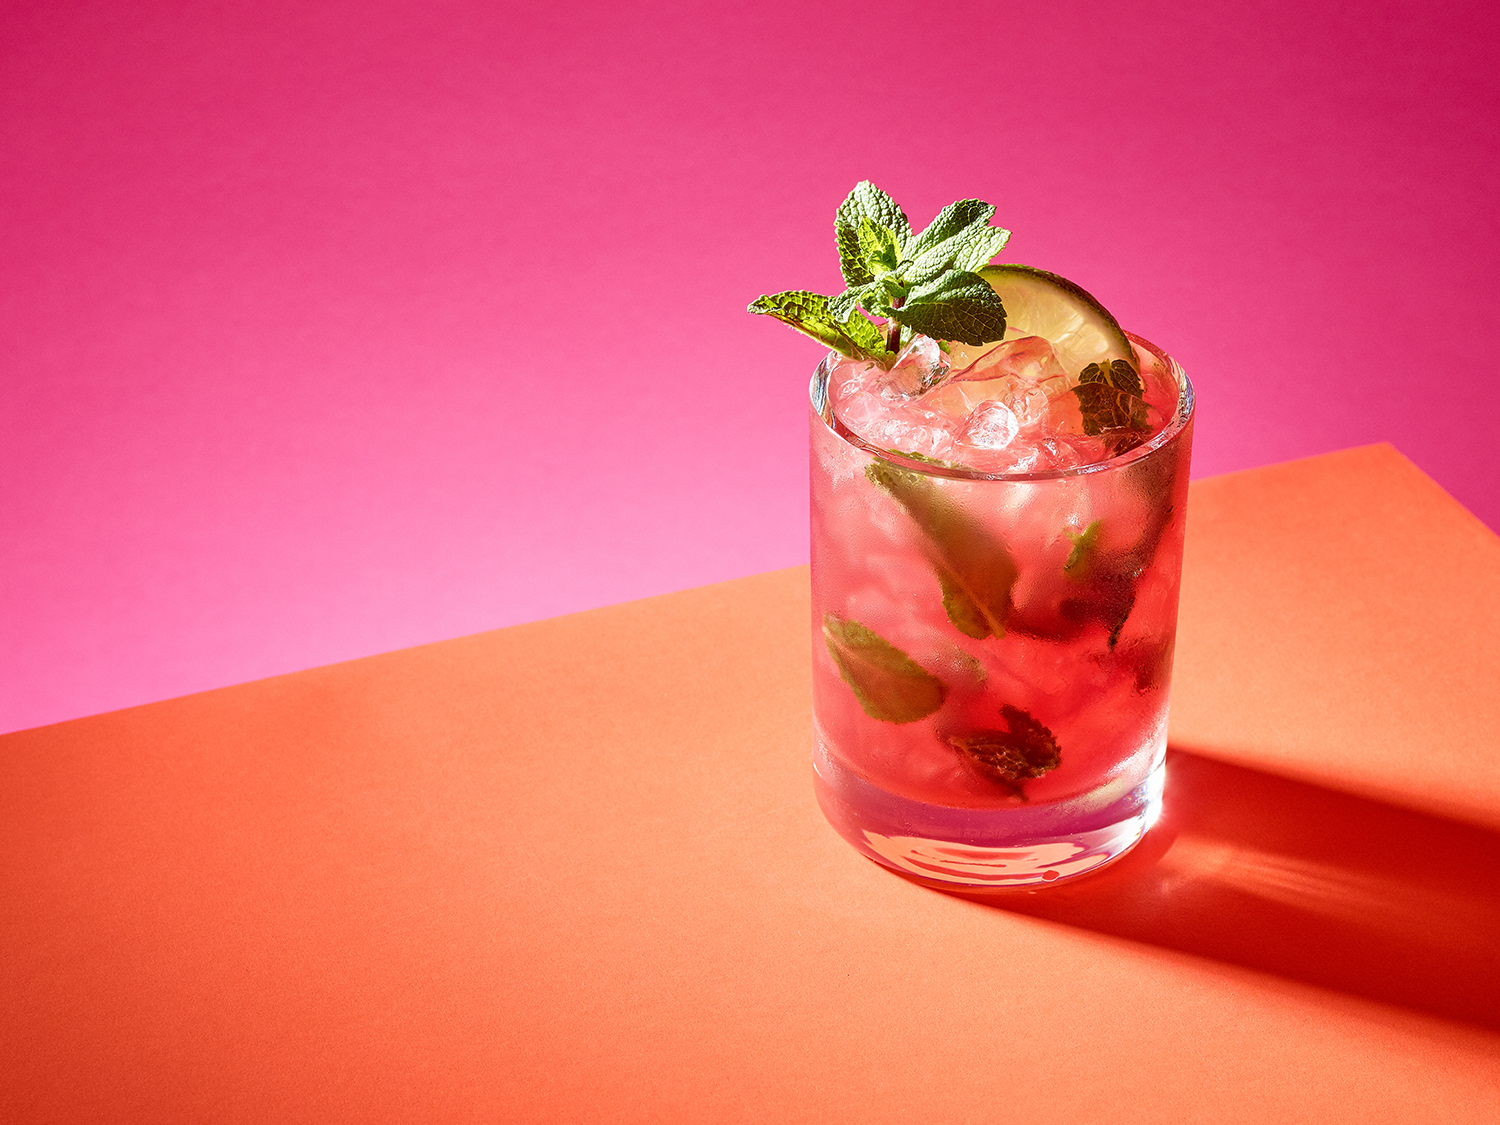 The Blackcurrant Mojito